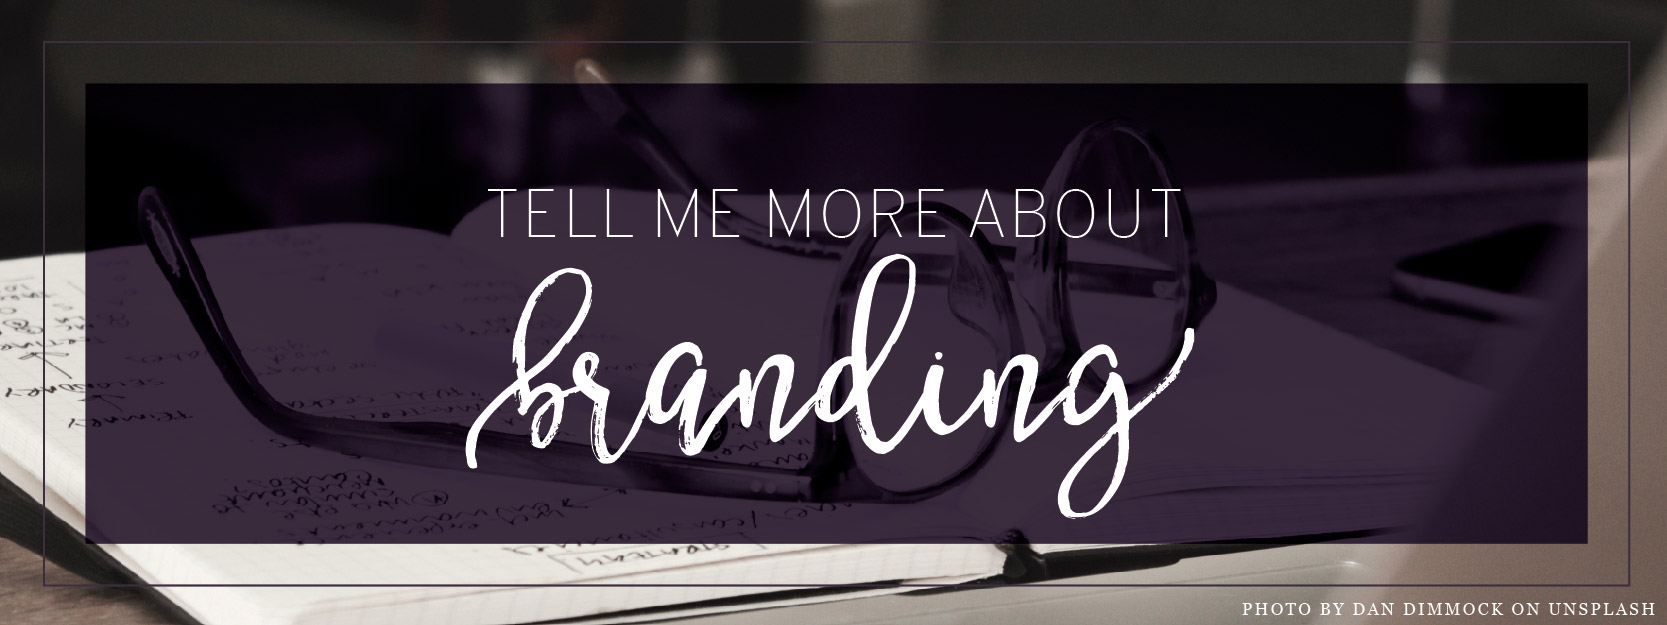 tell me more about branding